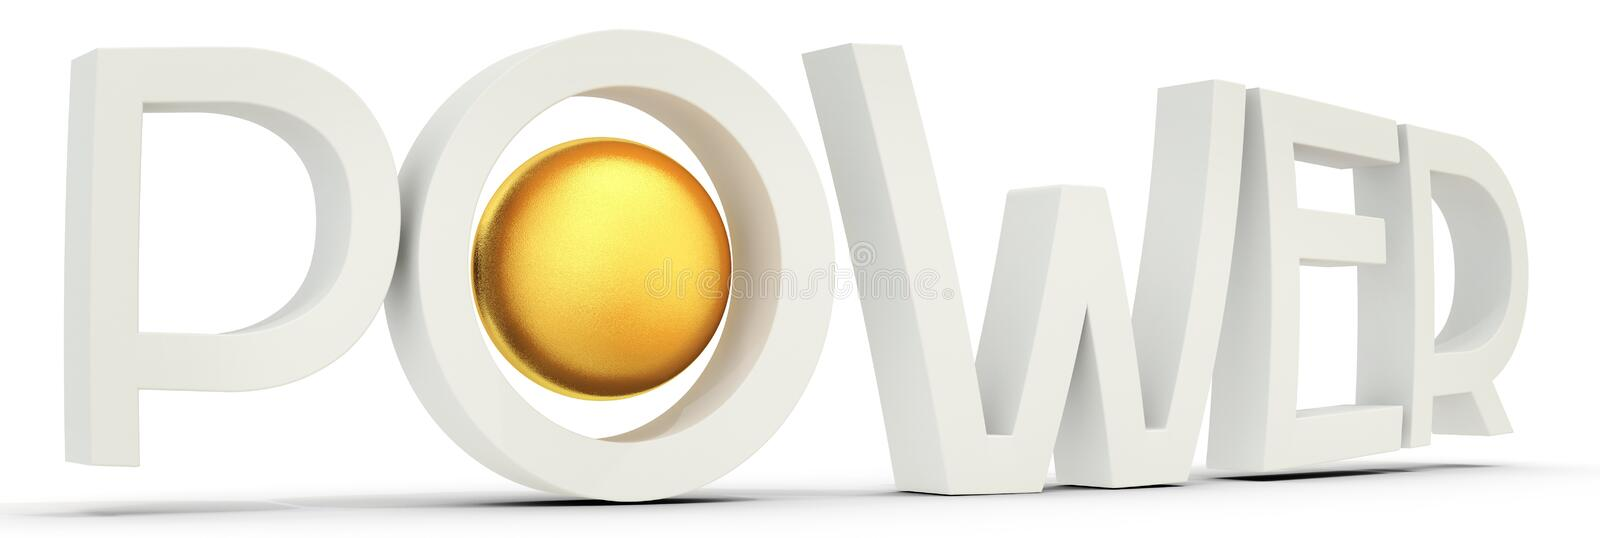 Word power with golden sphere stock illustration